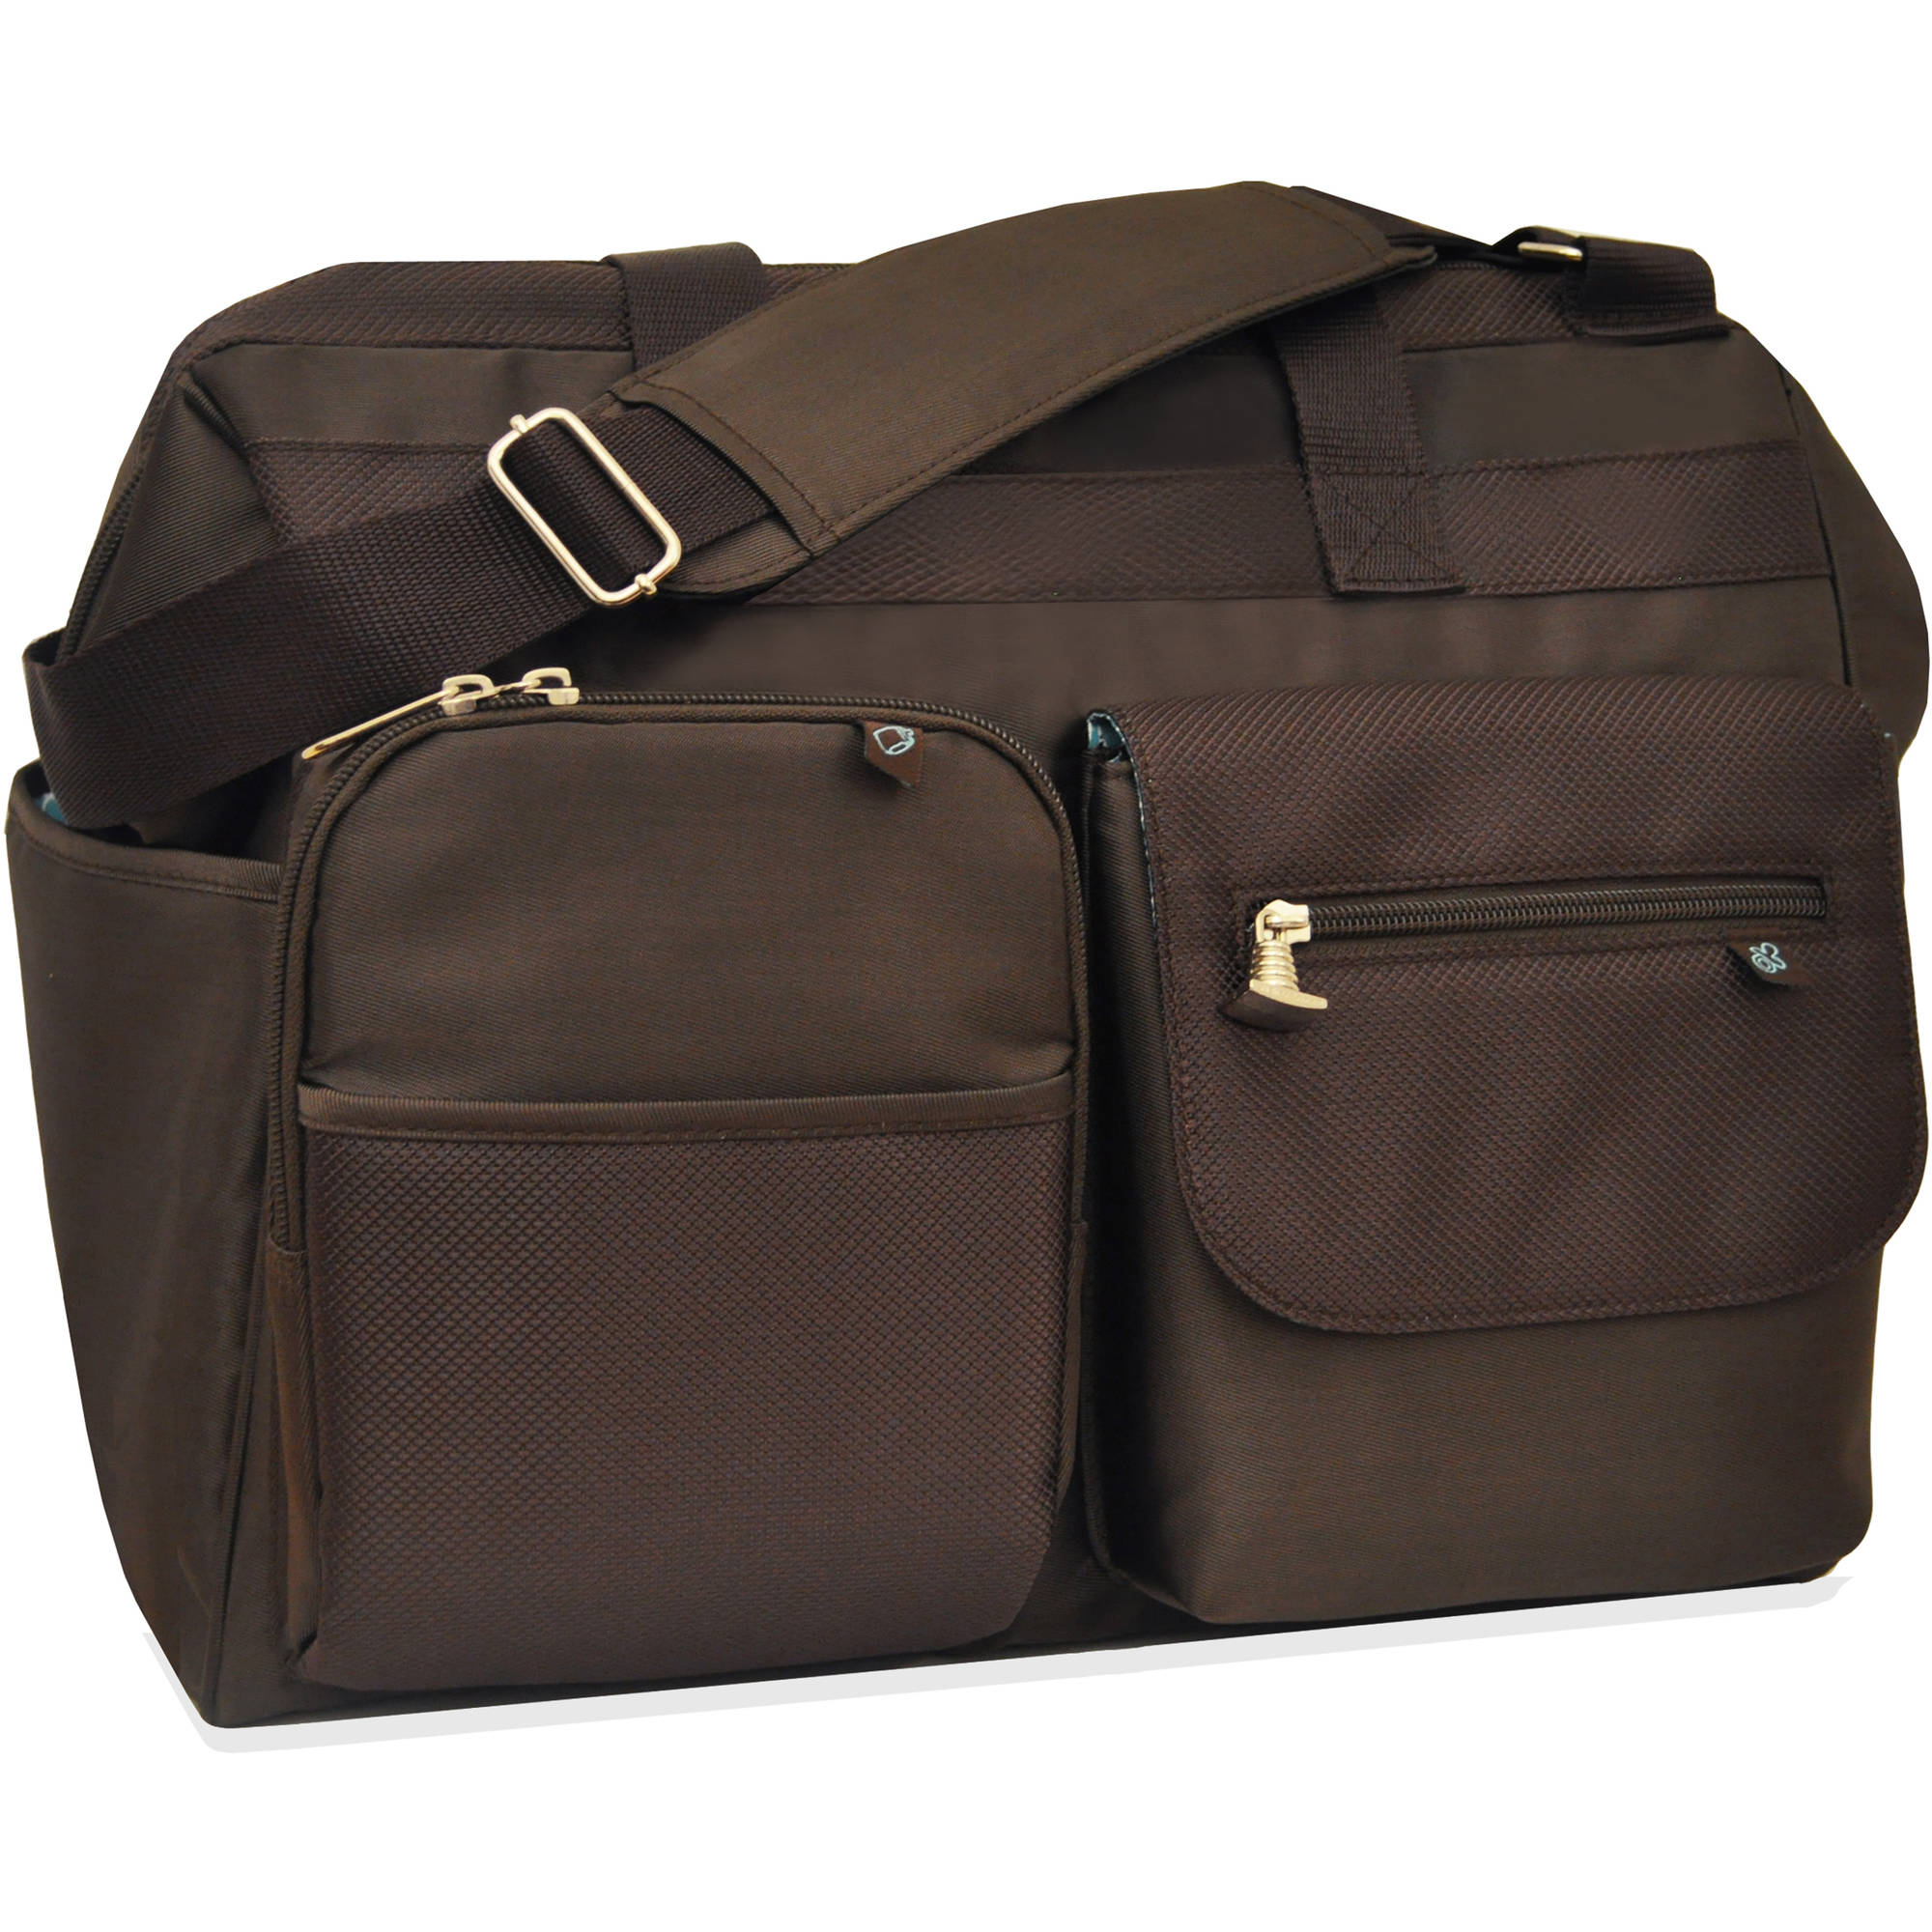 Fisher-Price Brown Frame Diaper Tote